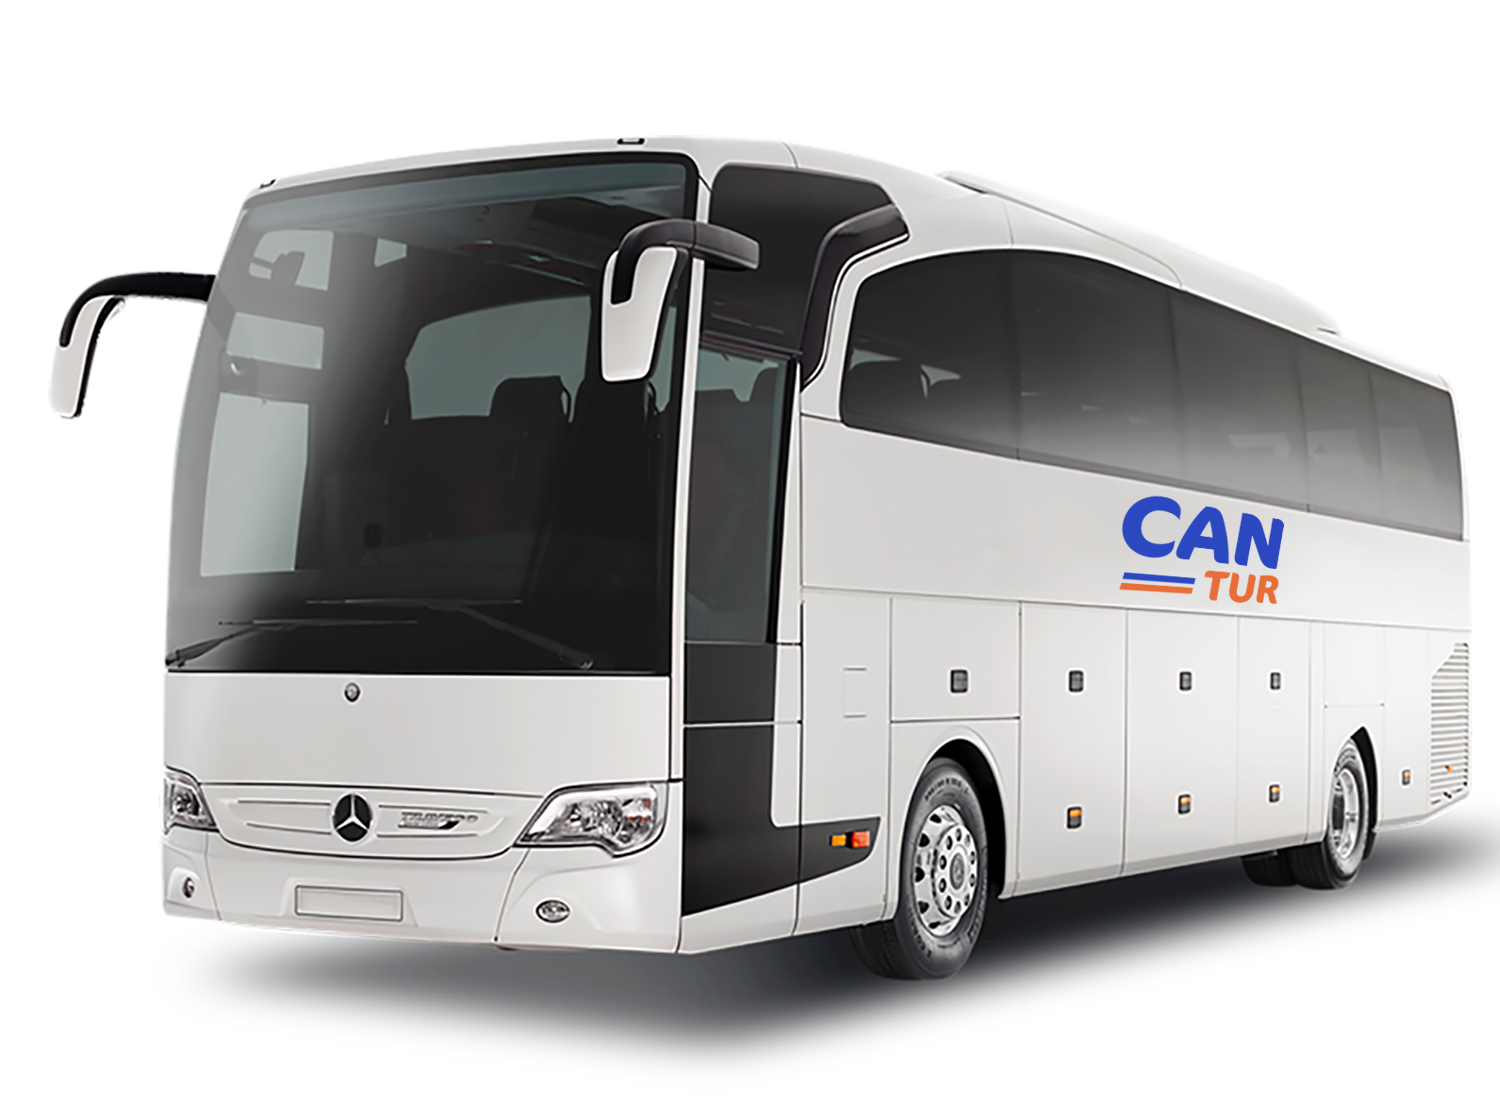 Can Tur